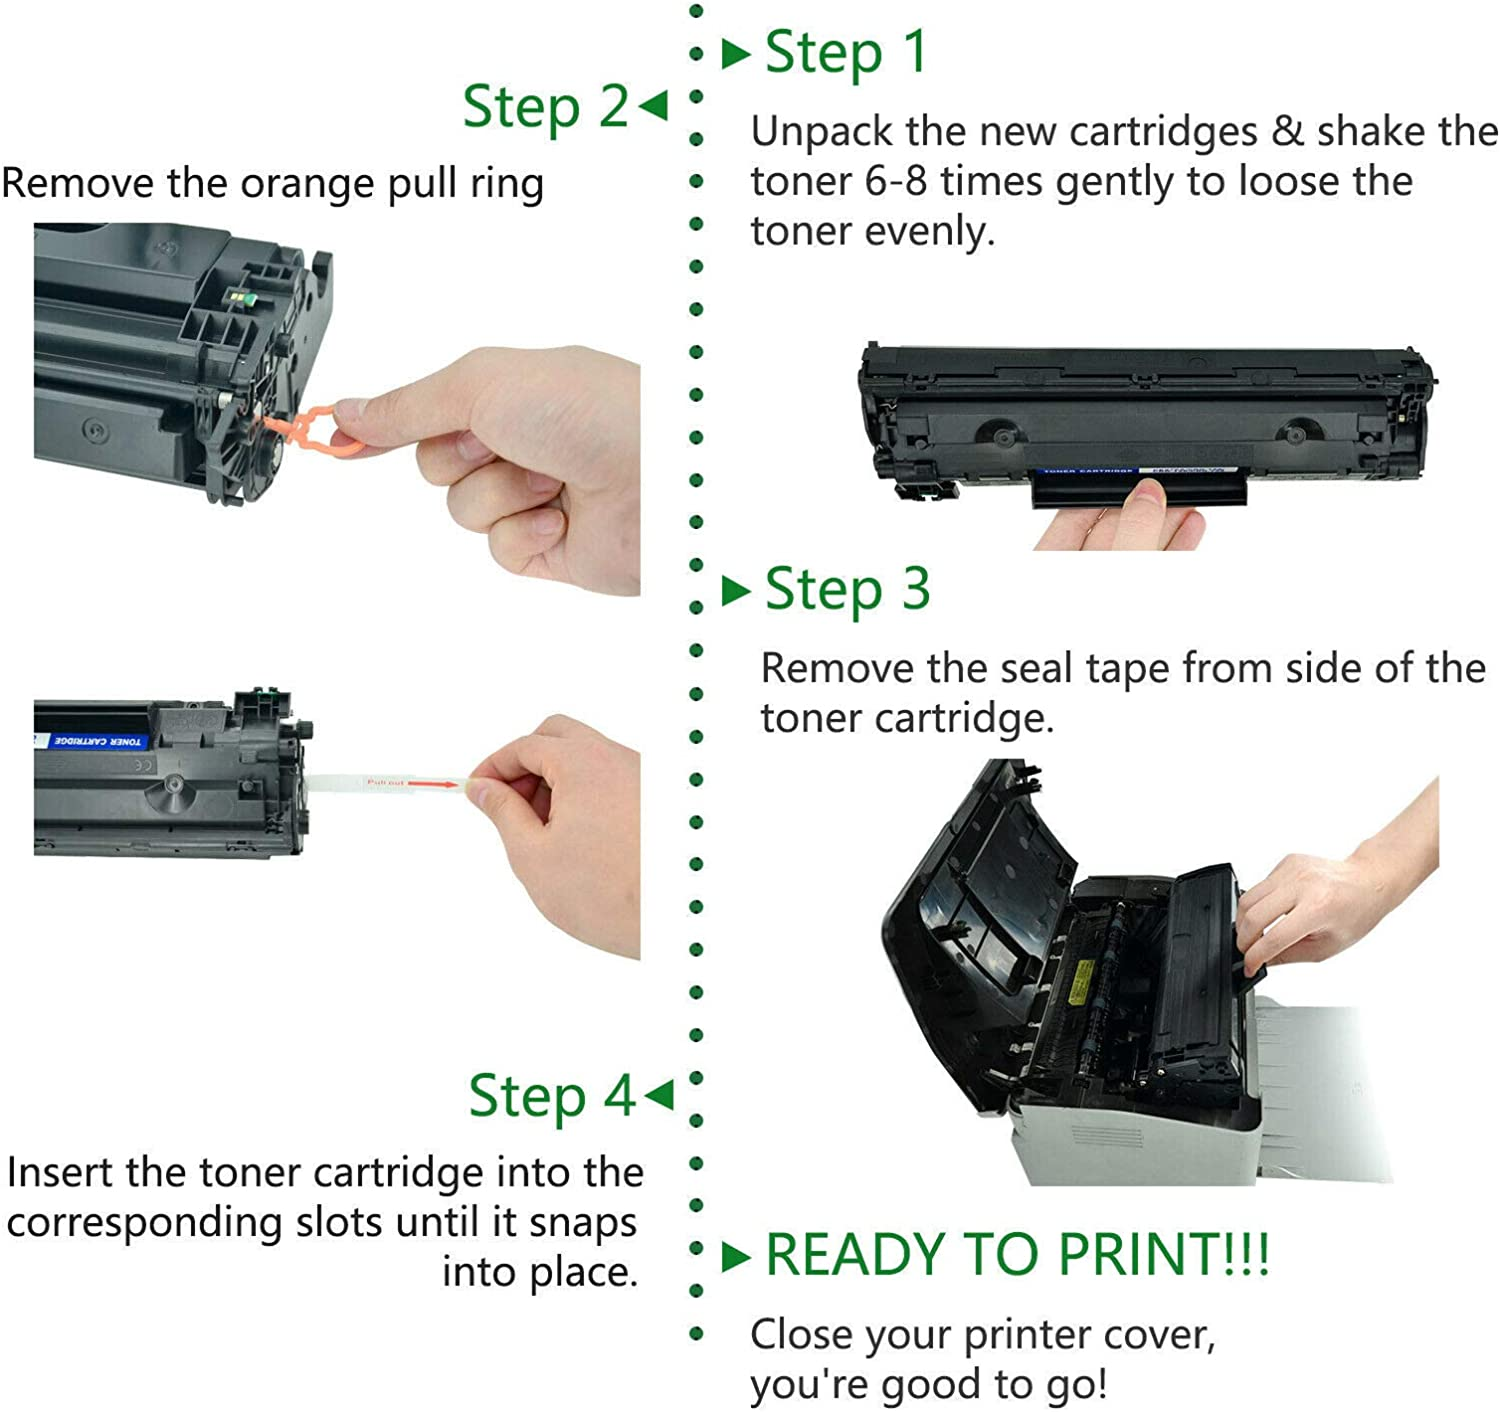 GREENCYCLE High Yield 14X CF214X BK Toner Cartridge Replacement Compatible for HP Laserjet Enterprise 700 M712dn M712n M712xh MFP M725dn MFP M725f MFP M725z MFP M725z Black,1 Pack Laser Printers